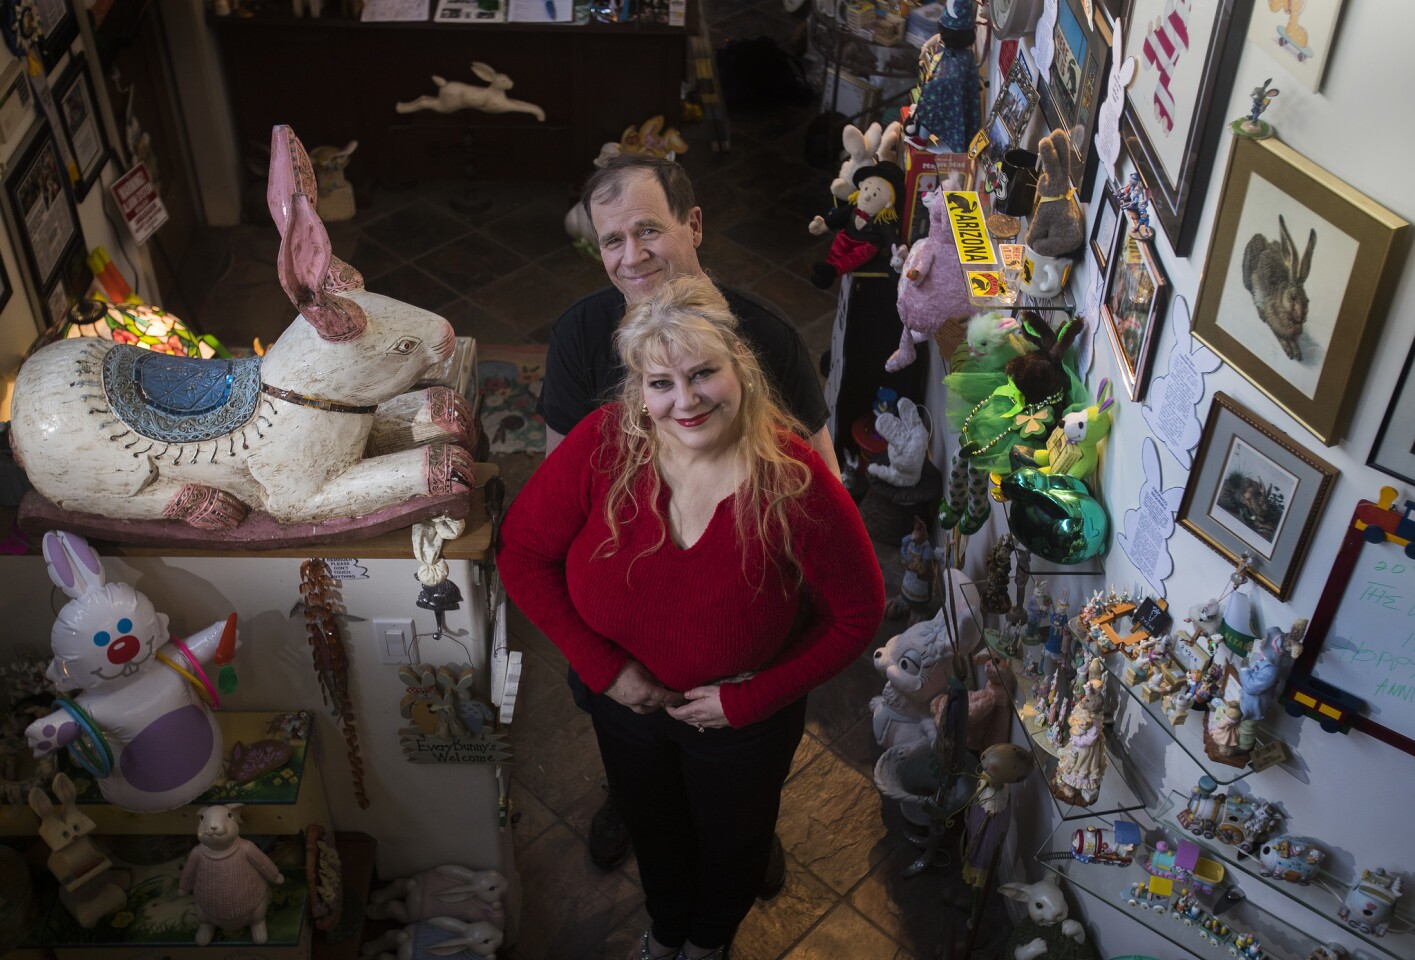 Candace Frazee and her husband, Steve Lubanski, started the Bunny Museum in 1998. Now, there are more than 35,000 rabbit-related items at their spot in Altadena.